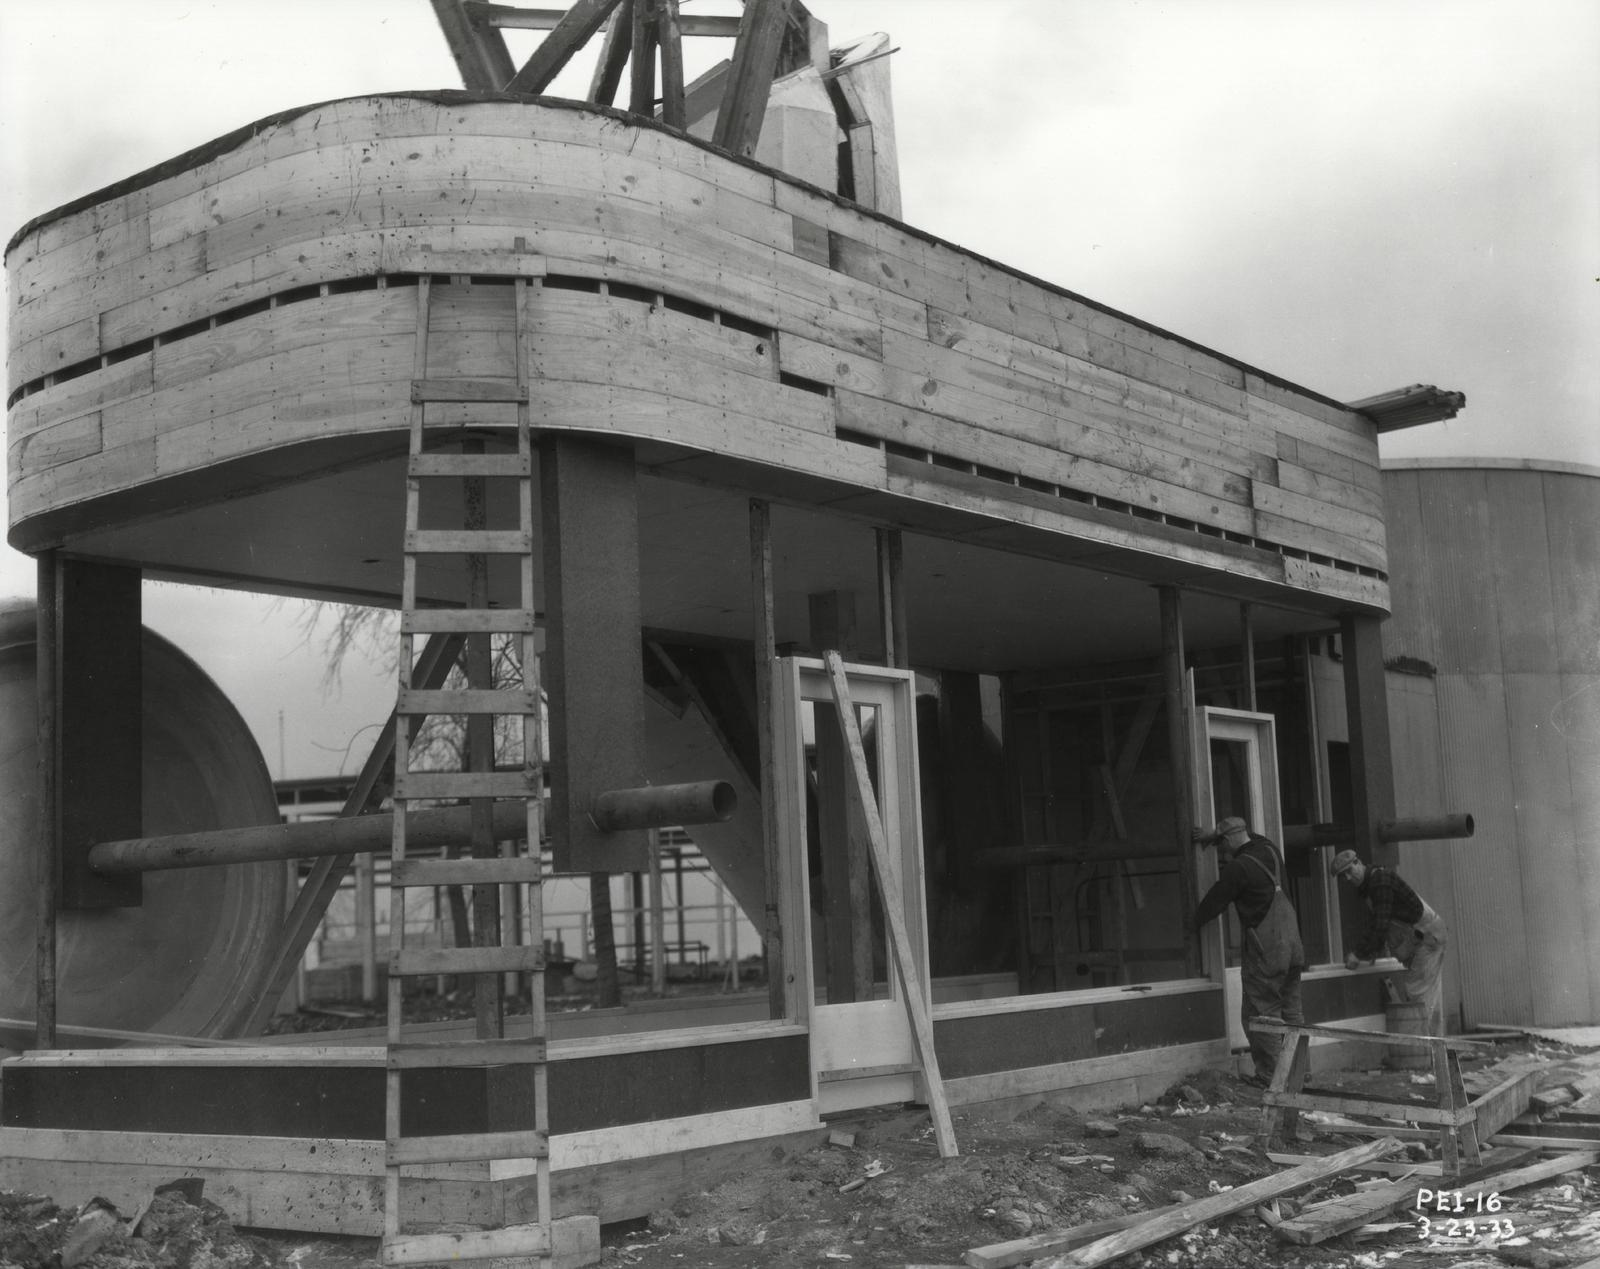 [Construction of a giant toy wagon in preparation for the Enchanted Island exhibit at A Century of Progress. The photo was taken in March of 1933, a few months before the grand opening of the Fair.]